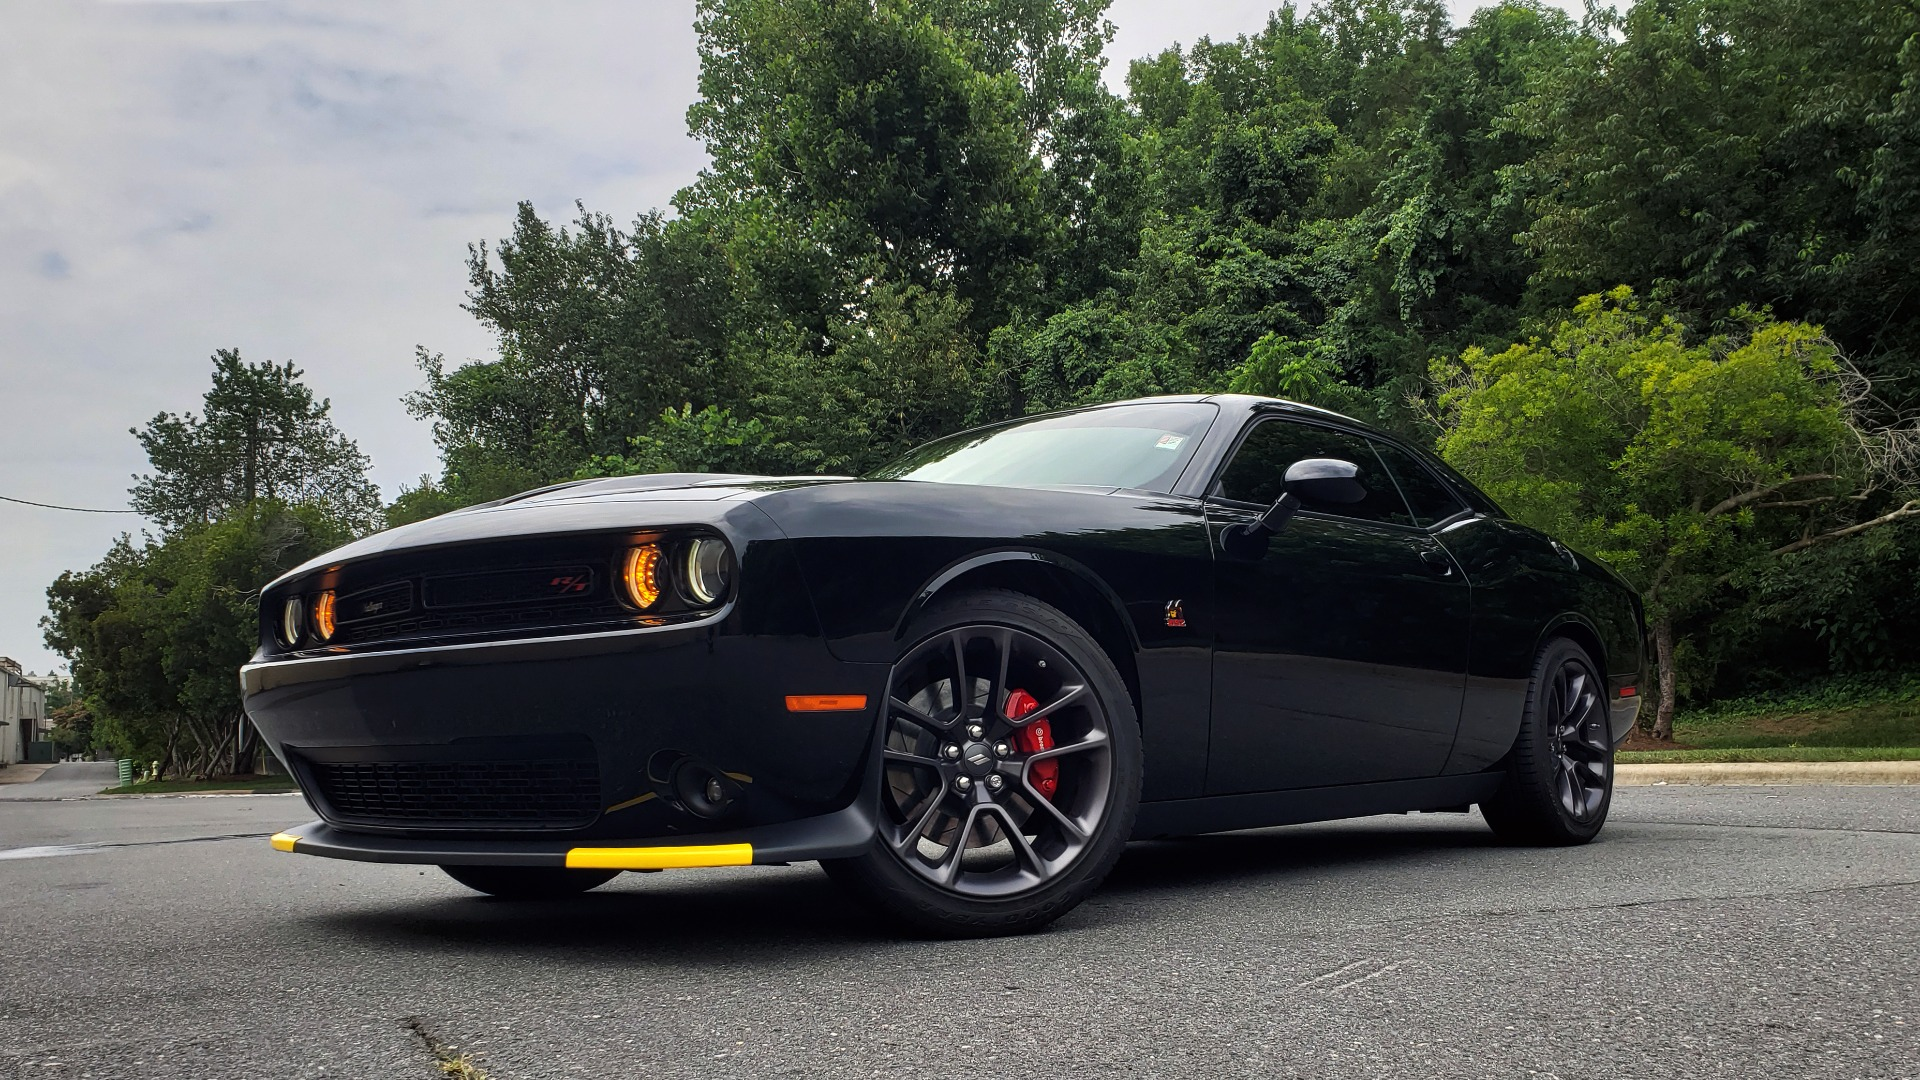 Used 2020 Dodge Challenger R/T Scat Pack for sale $42,995 at Formula Imports in Charlotte NC 28227 1